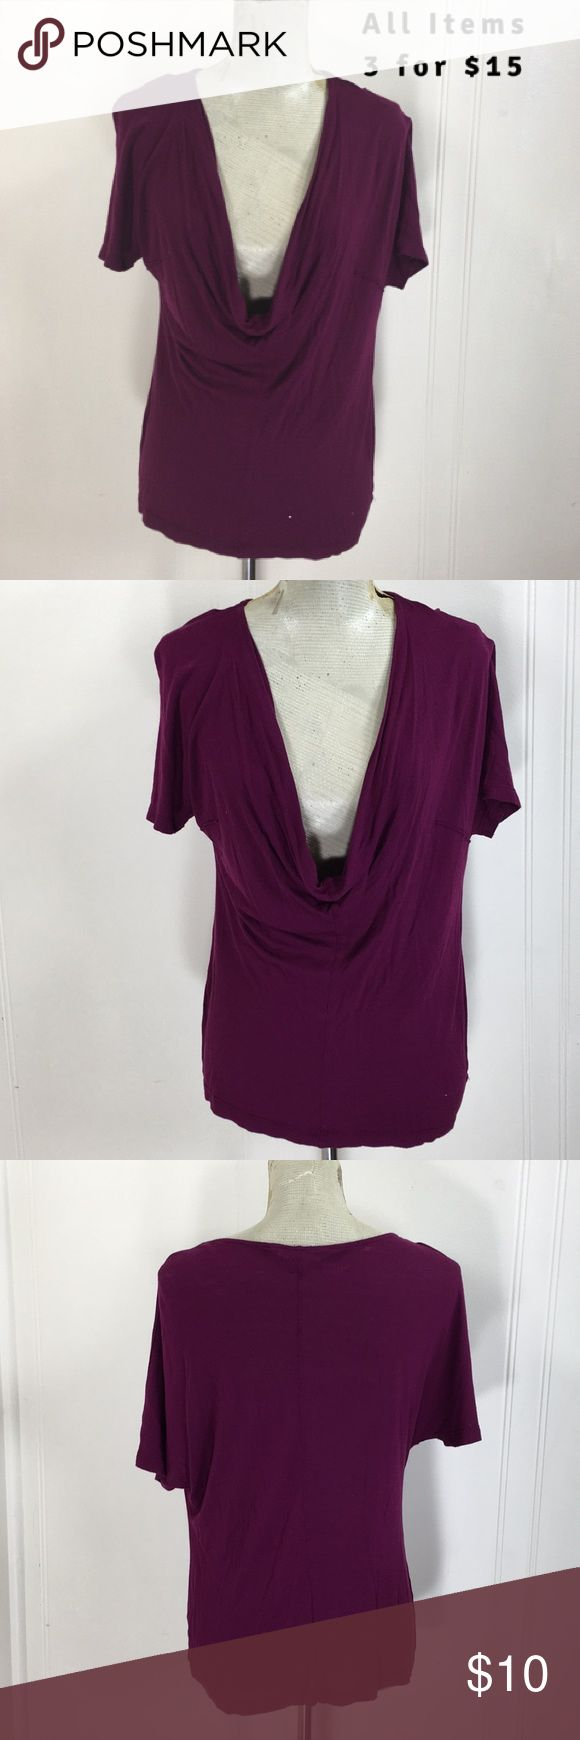 """Old Navy Light Batwing Blouse Preowned condition. No stains or holes. Normal wash and wear.   Tag Size: women's medium Bust Flat: 19"""" Length: 23"""" Fabric: loose fitting and stretchy.   Please go off measurements and not tag size.   I love questions!  No Trades or Modeling. Old Navy Tops Blouses"""